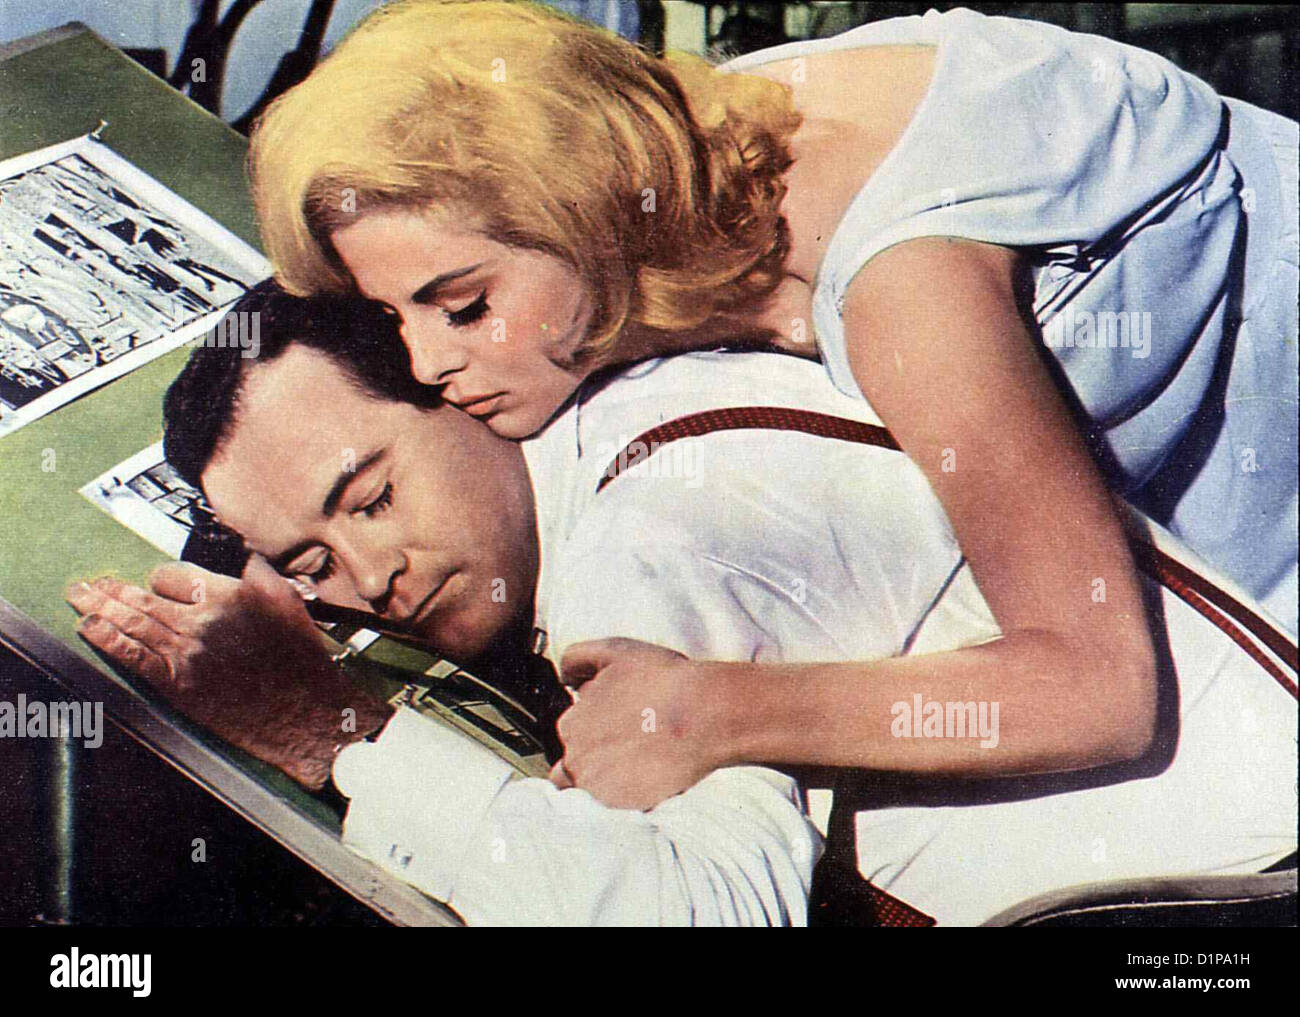 jack lemmon virna lisi murder stock photos jack lemmon virna lisi murder stock images alamy. Black Bedroom Furniture Sets. Home Design Ideas